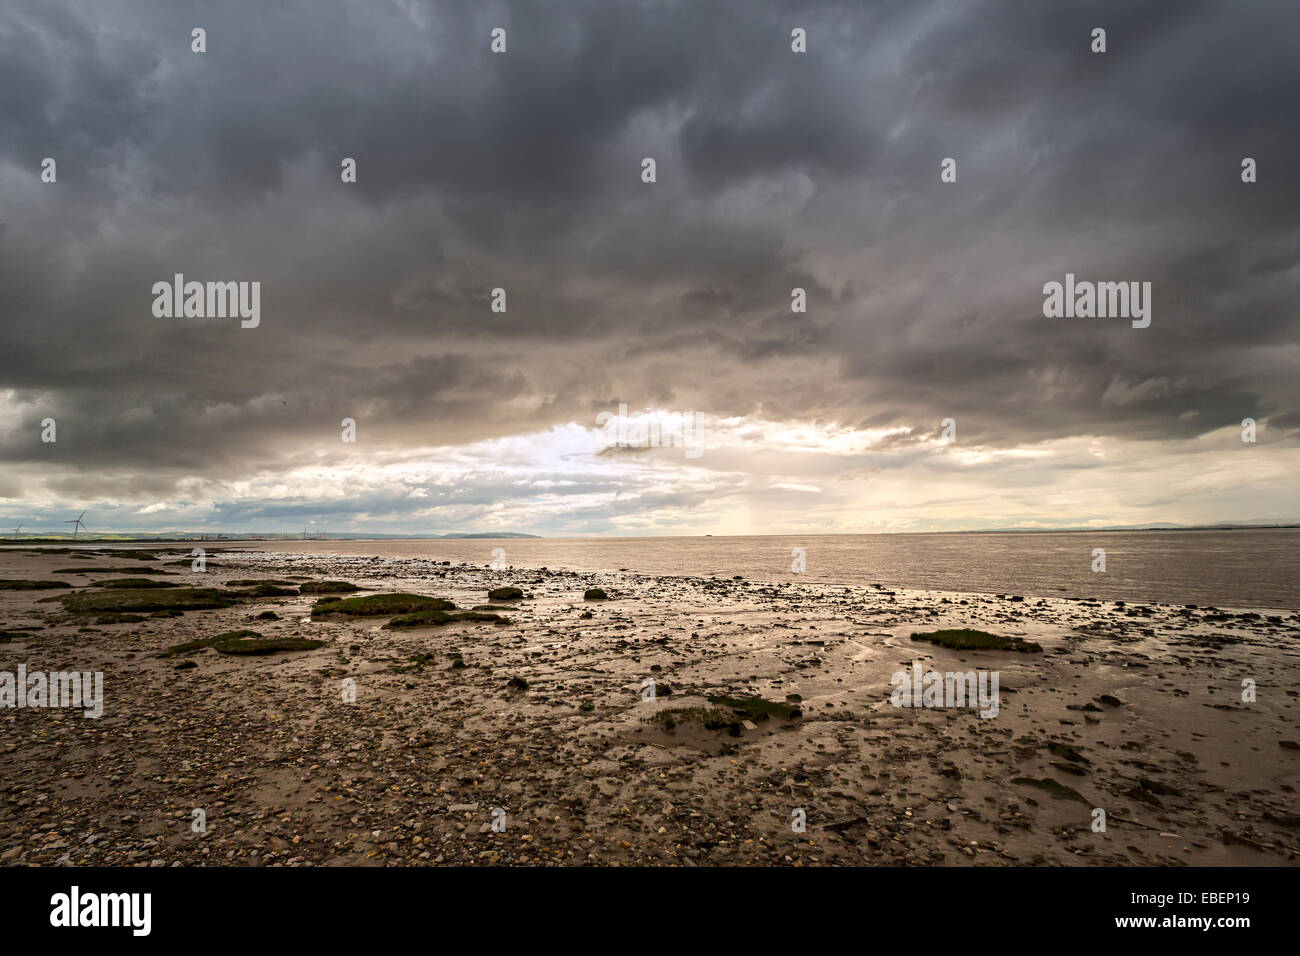 Muddy bank of the River Severn ner the second road bridge, England, UK - Stock Image